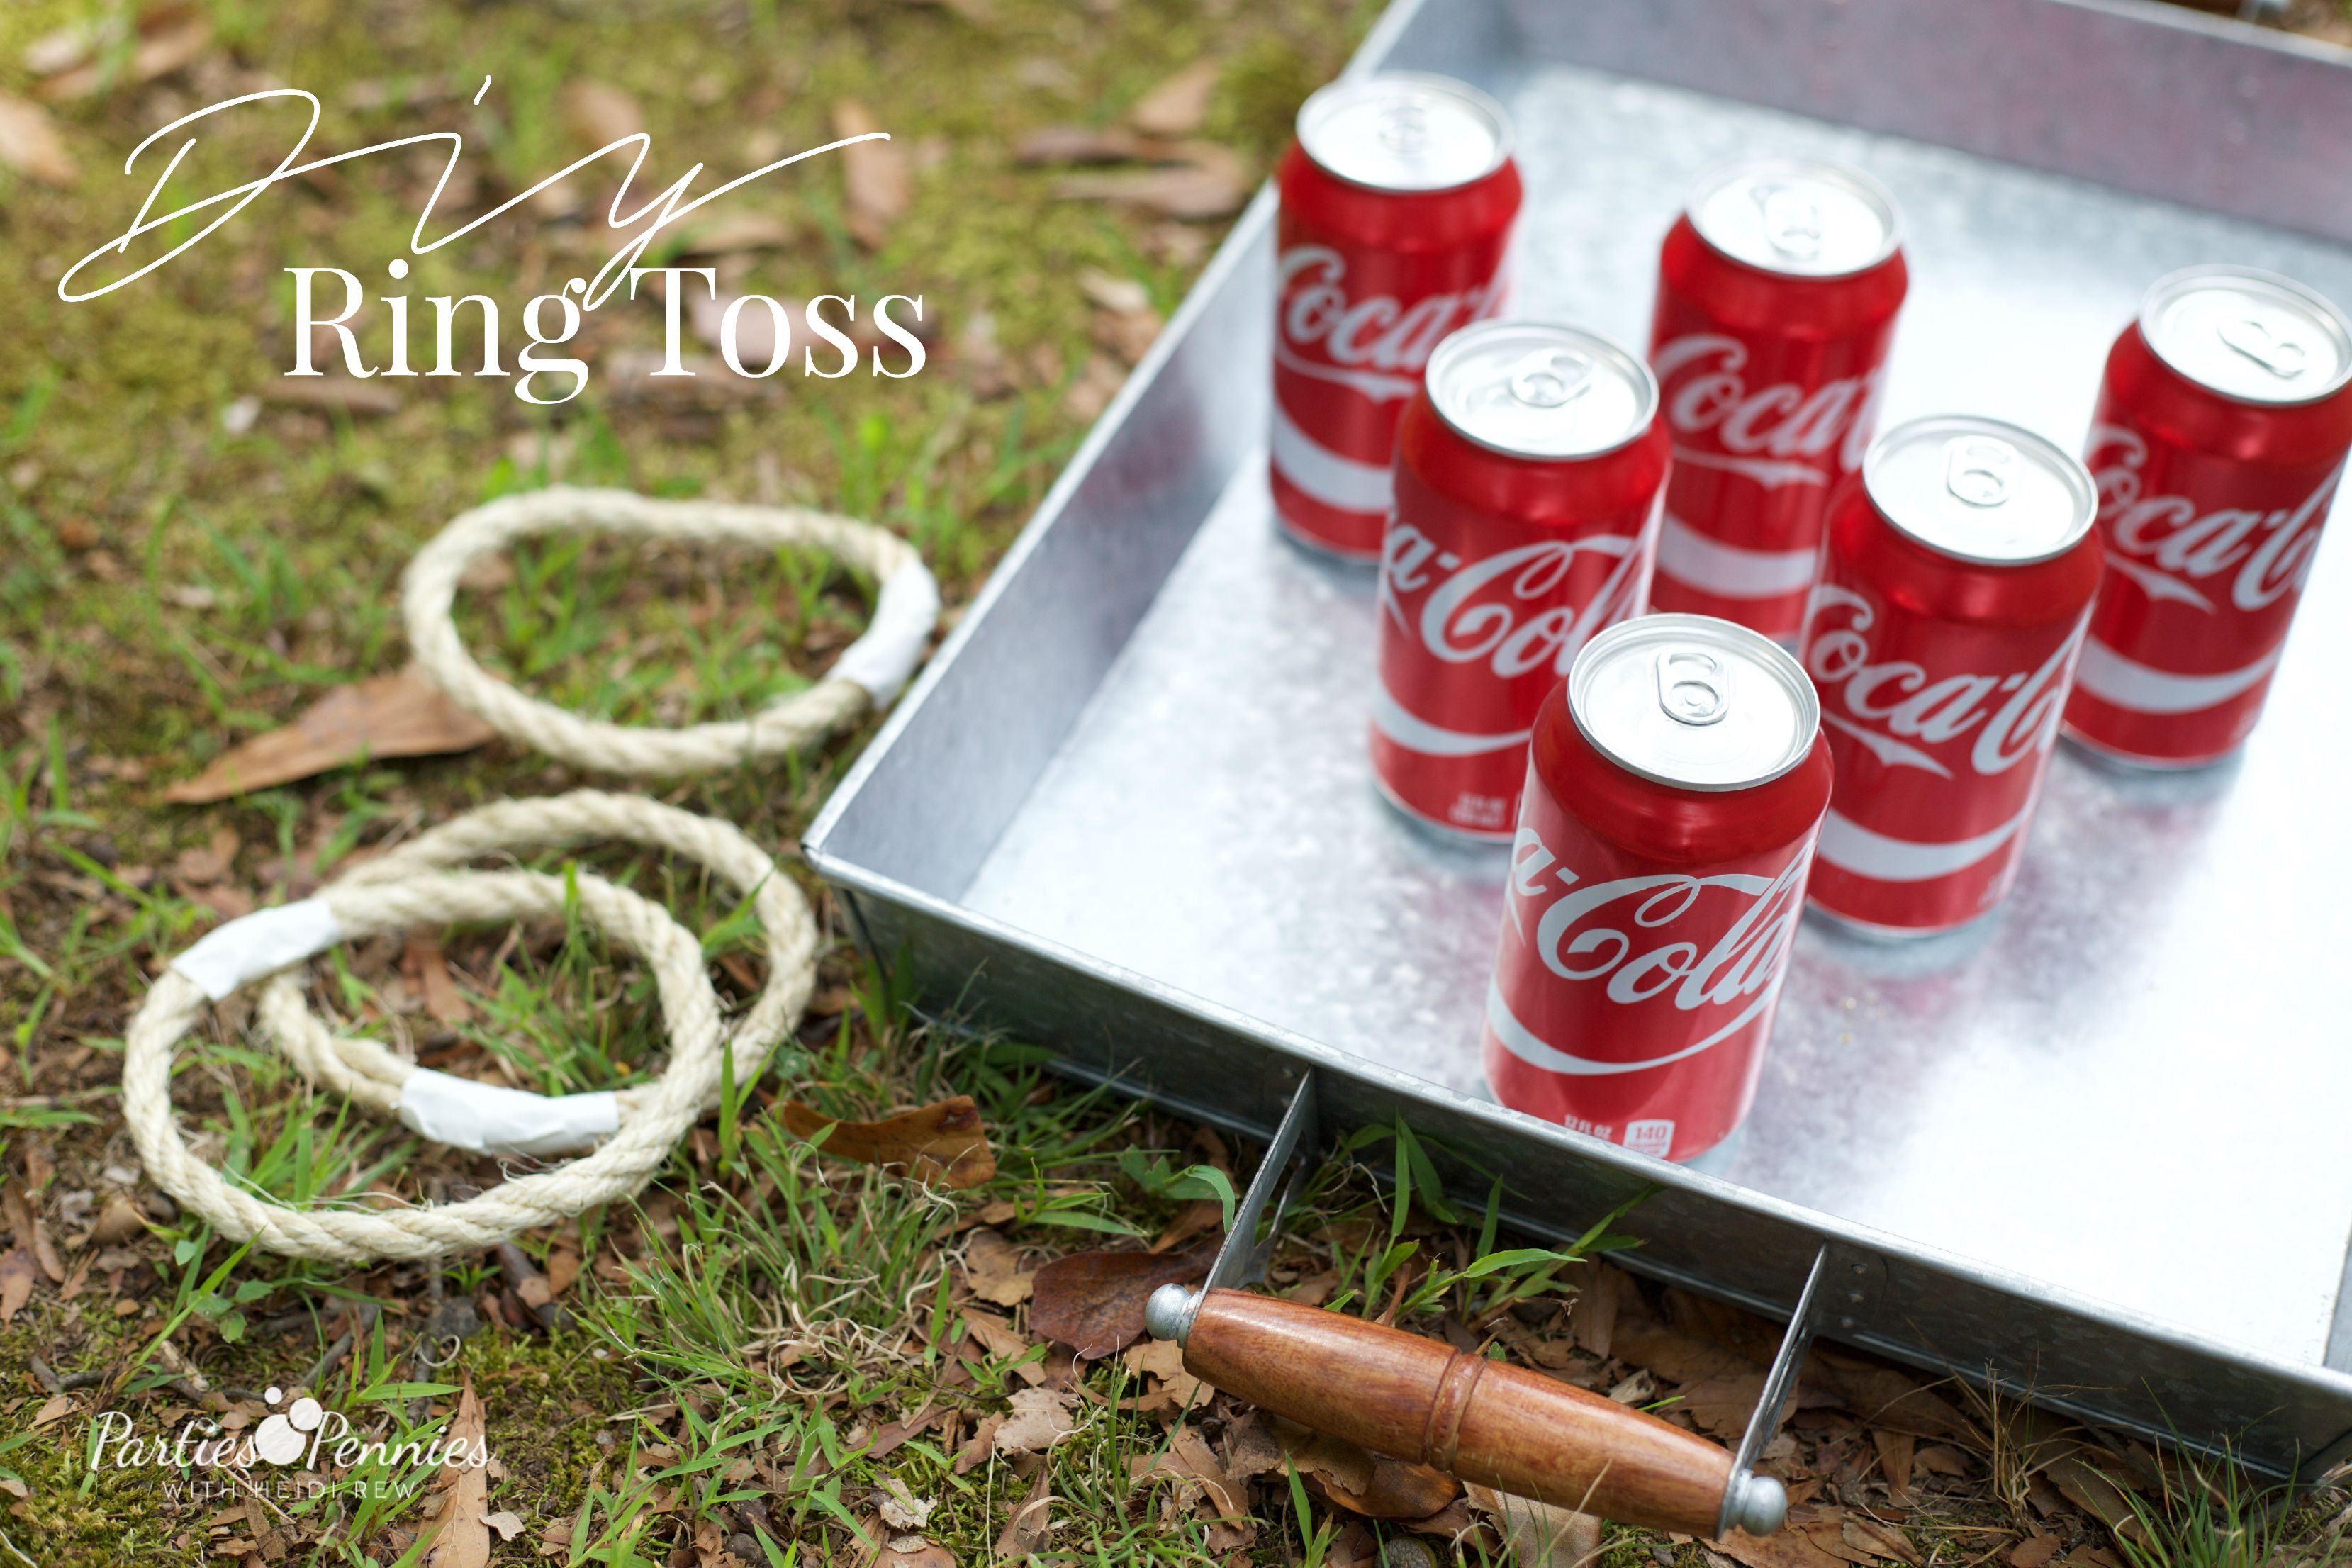 Coca-Cola Fall Football Sam's Club | How to Throw a Tailgate Party | DIY Ring Toss |PartiesforPennies.com | #tailgate #floridagators #universityofflorida #shareyourspirit